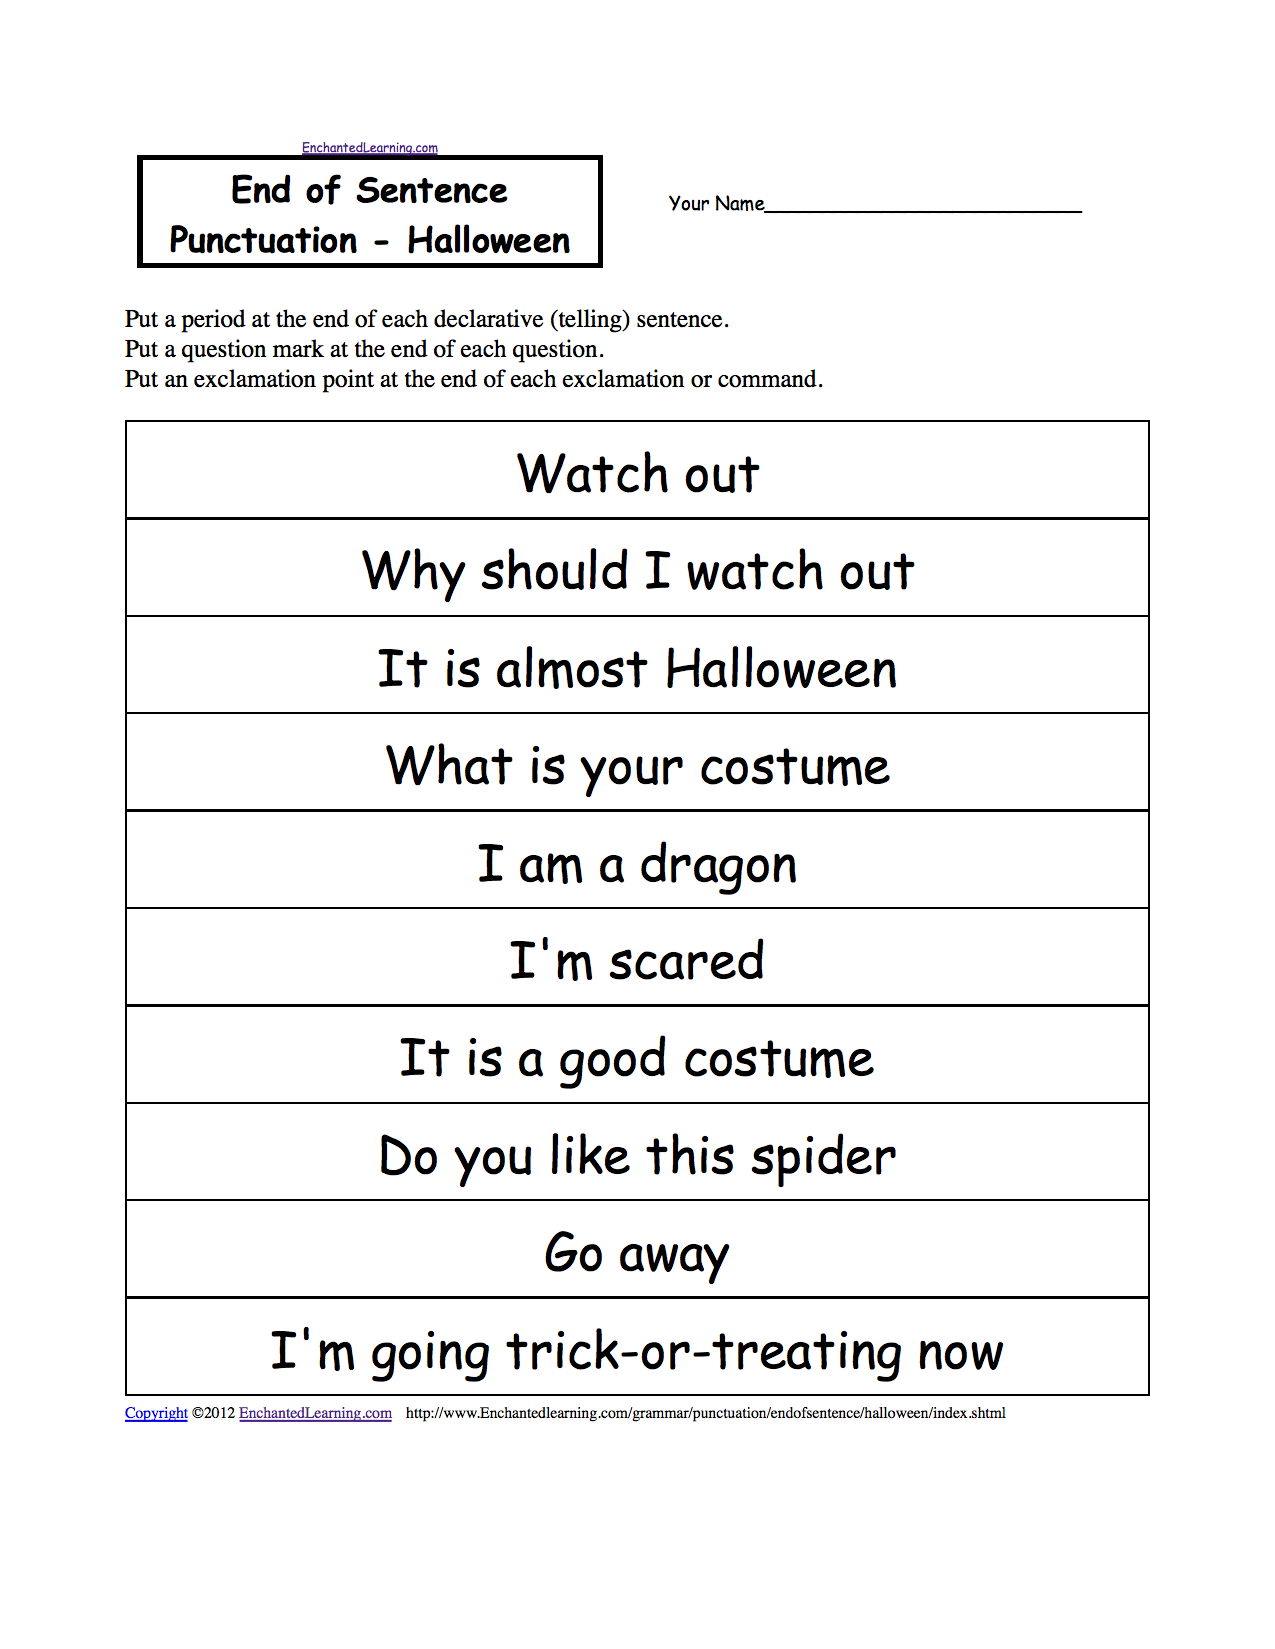 Worksheet Punctuation Worksheet end of sentence punctuation printable worksheets halloween